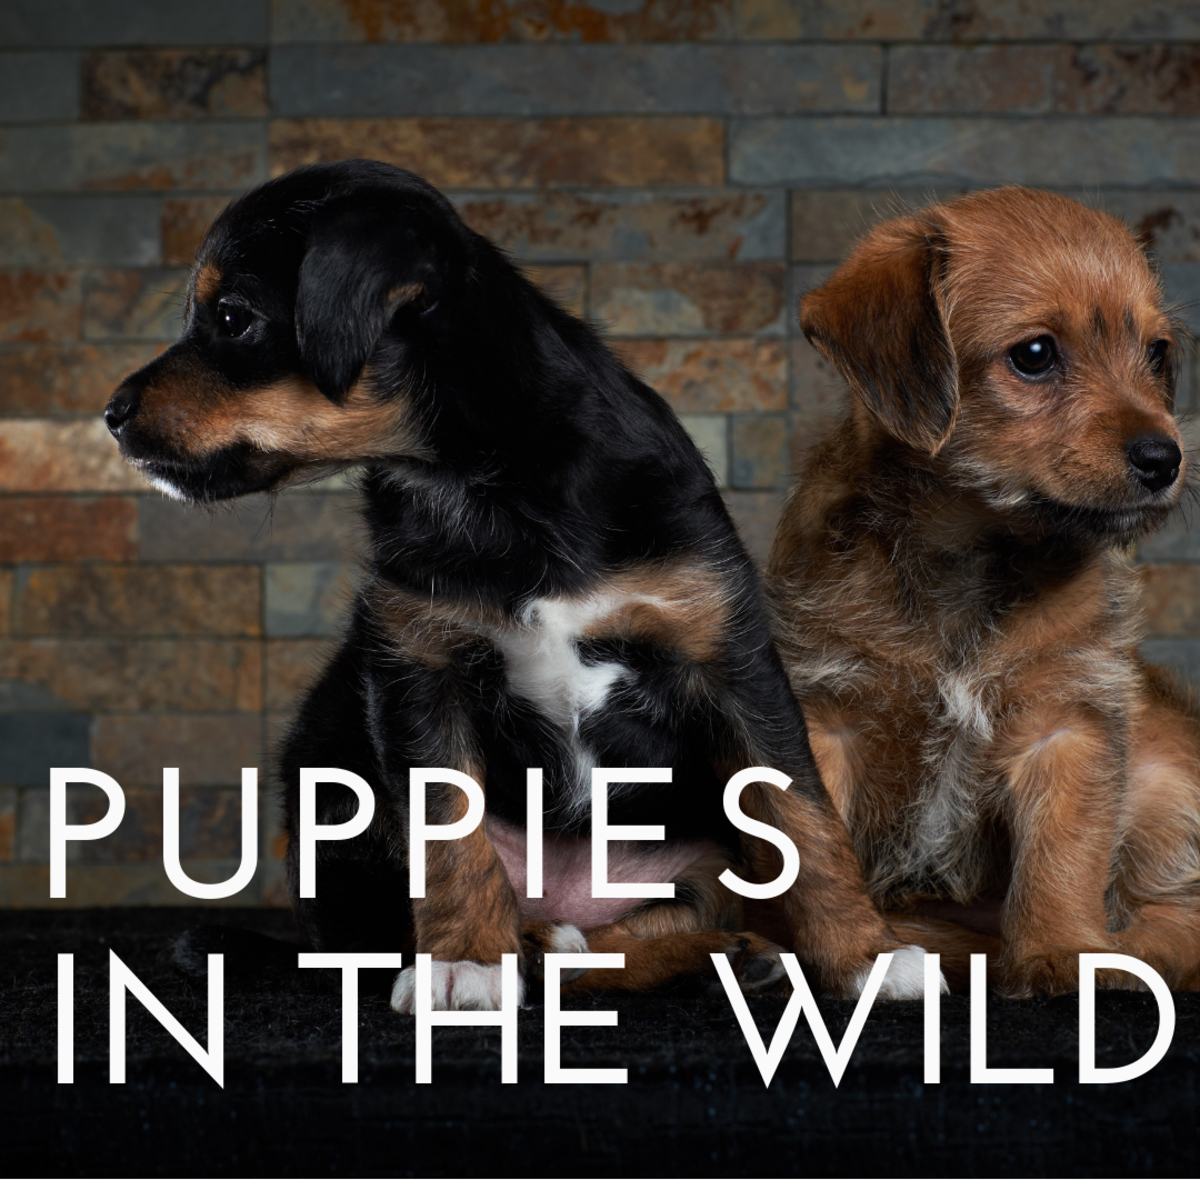 How Were Puppies Raised in the Wild